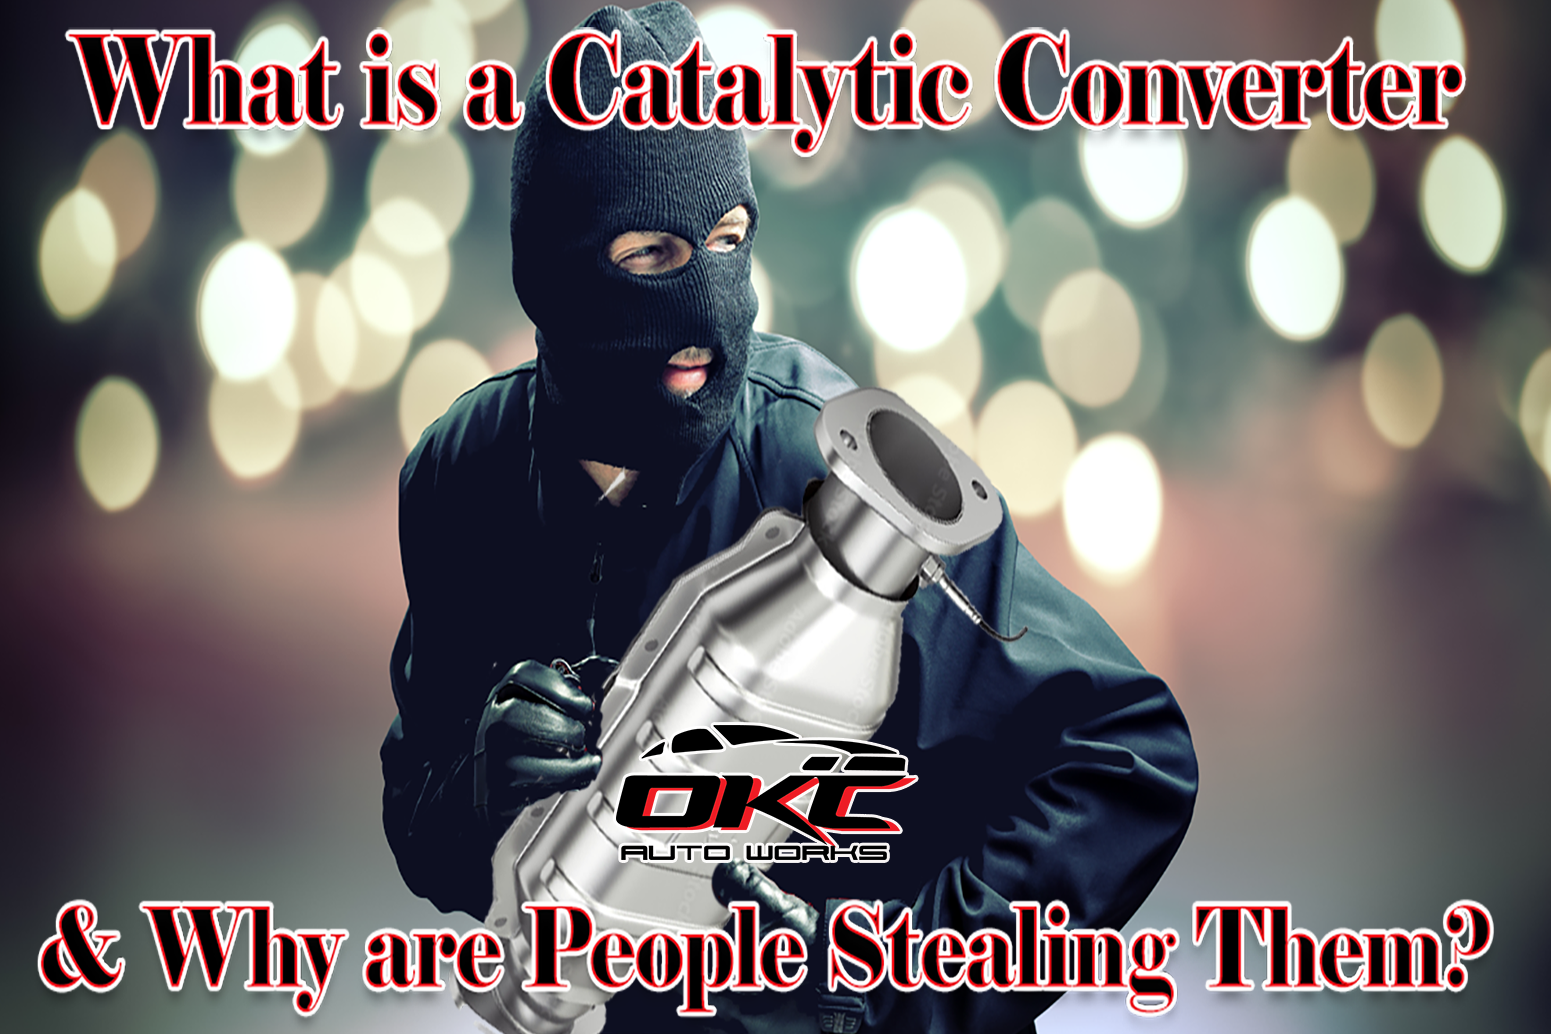 catalytic converter theft on the rise, what is a catalytic converter